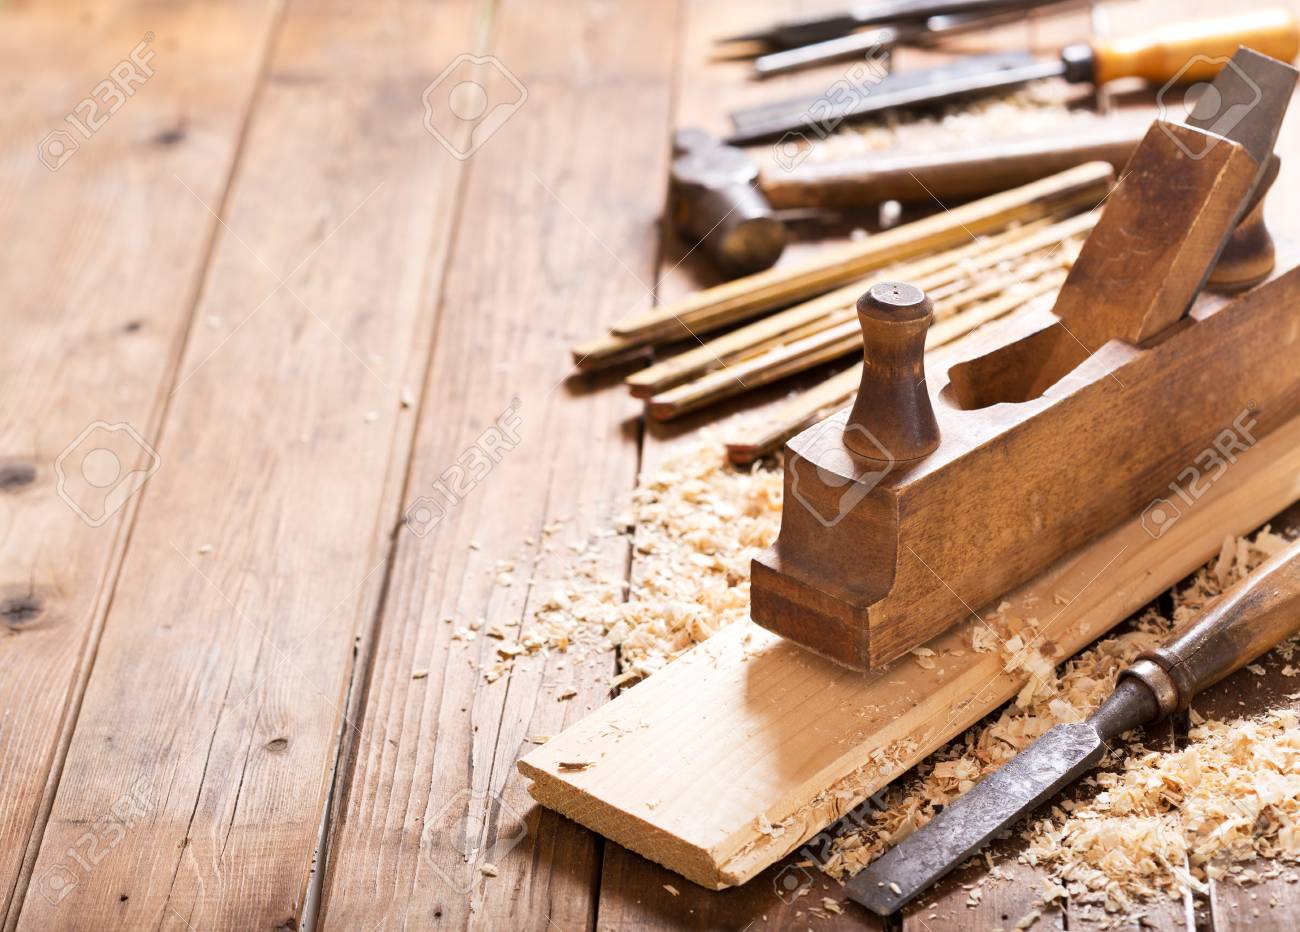 old tools: wooden planer, hammer, chisel in a carpentry workshop on wooden table - 101478122